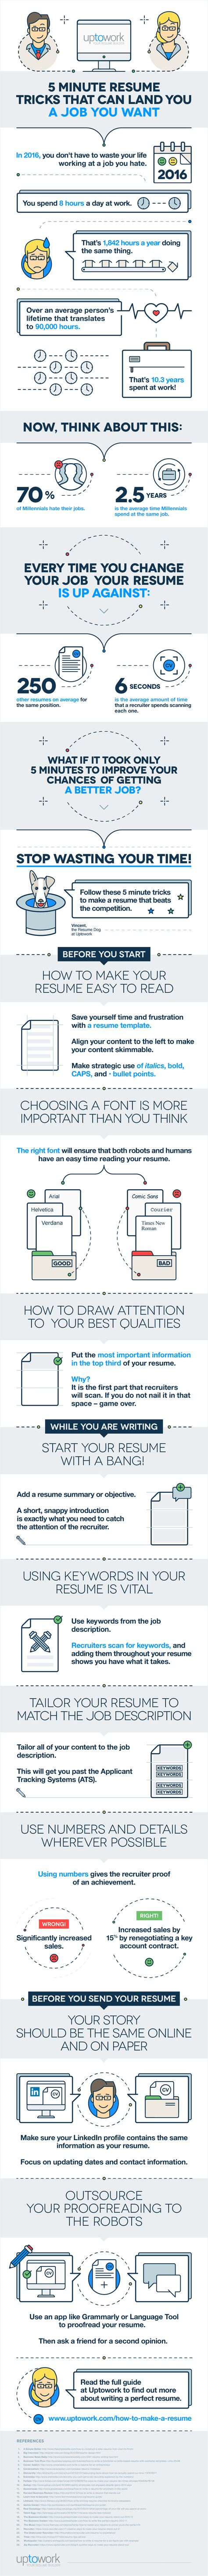 Short Objective For Resume 7 Tips On How To Write A Resume That Grabs Recruiters' Attention .